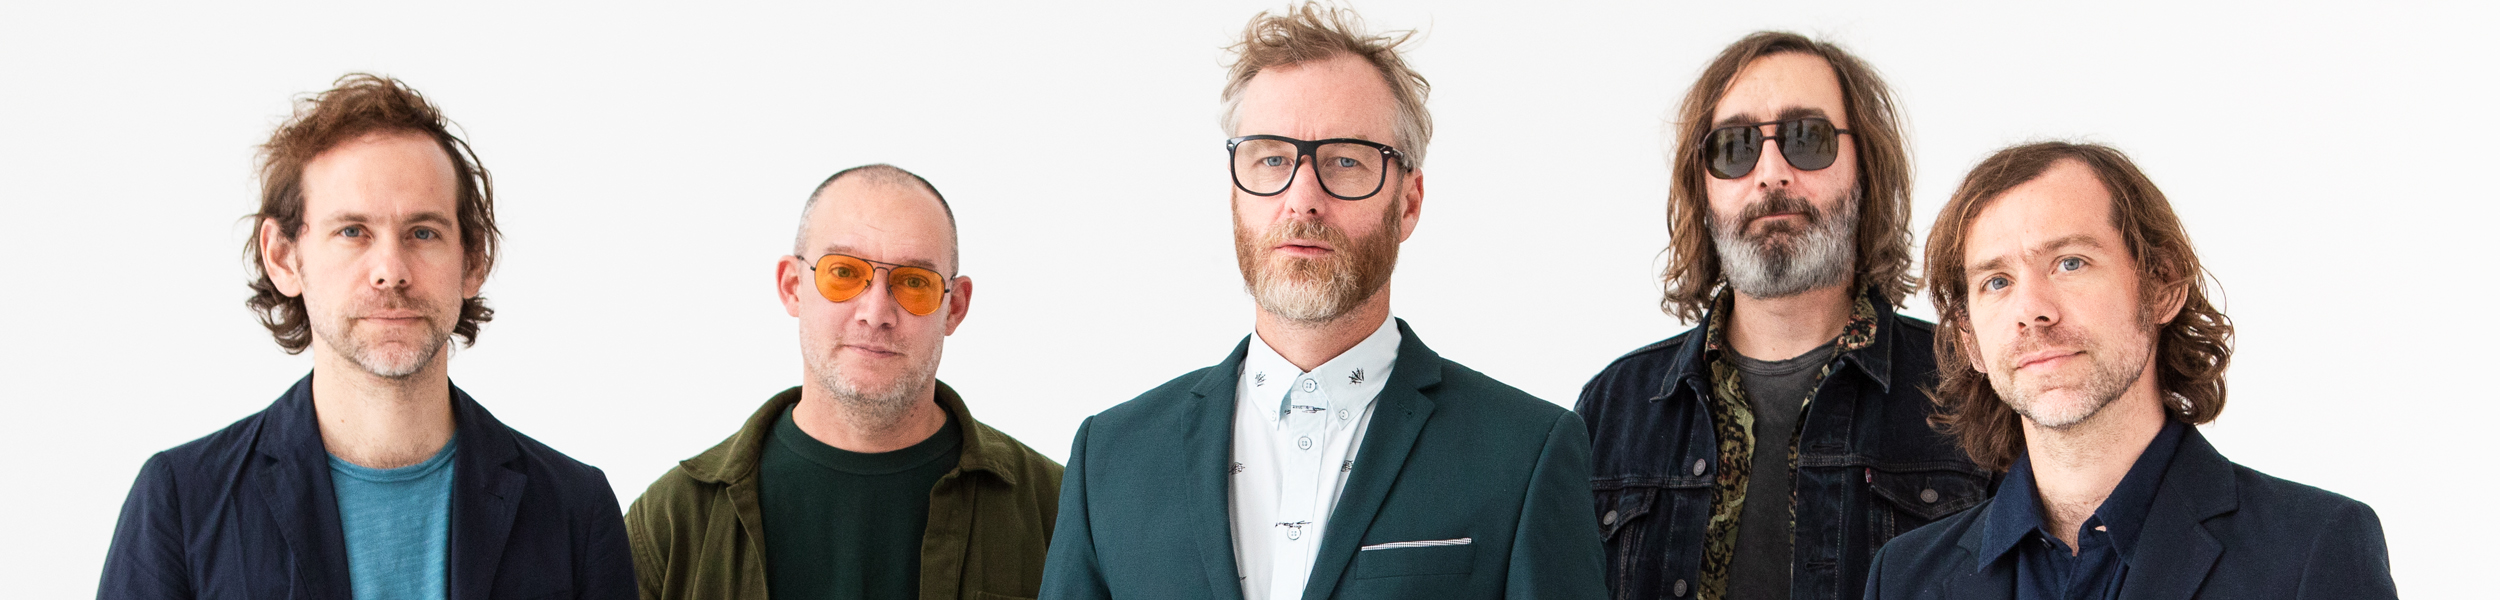 The National - Announce December UK Tour Dates